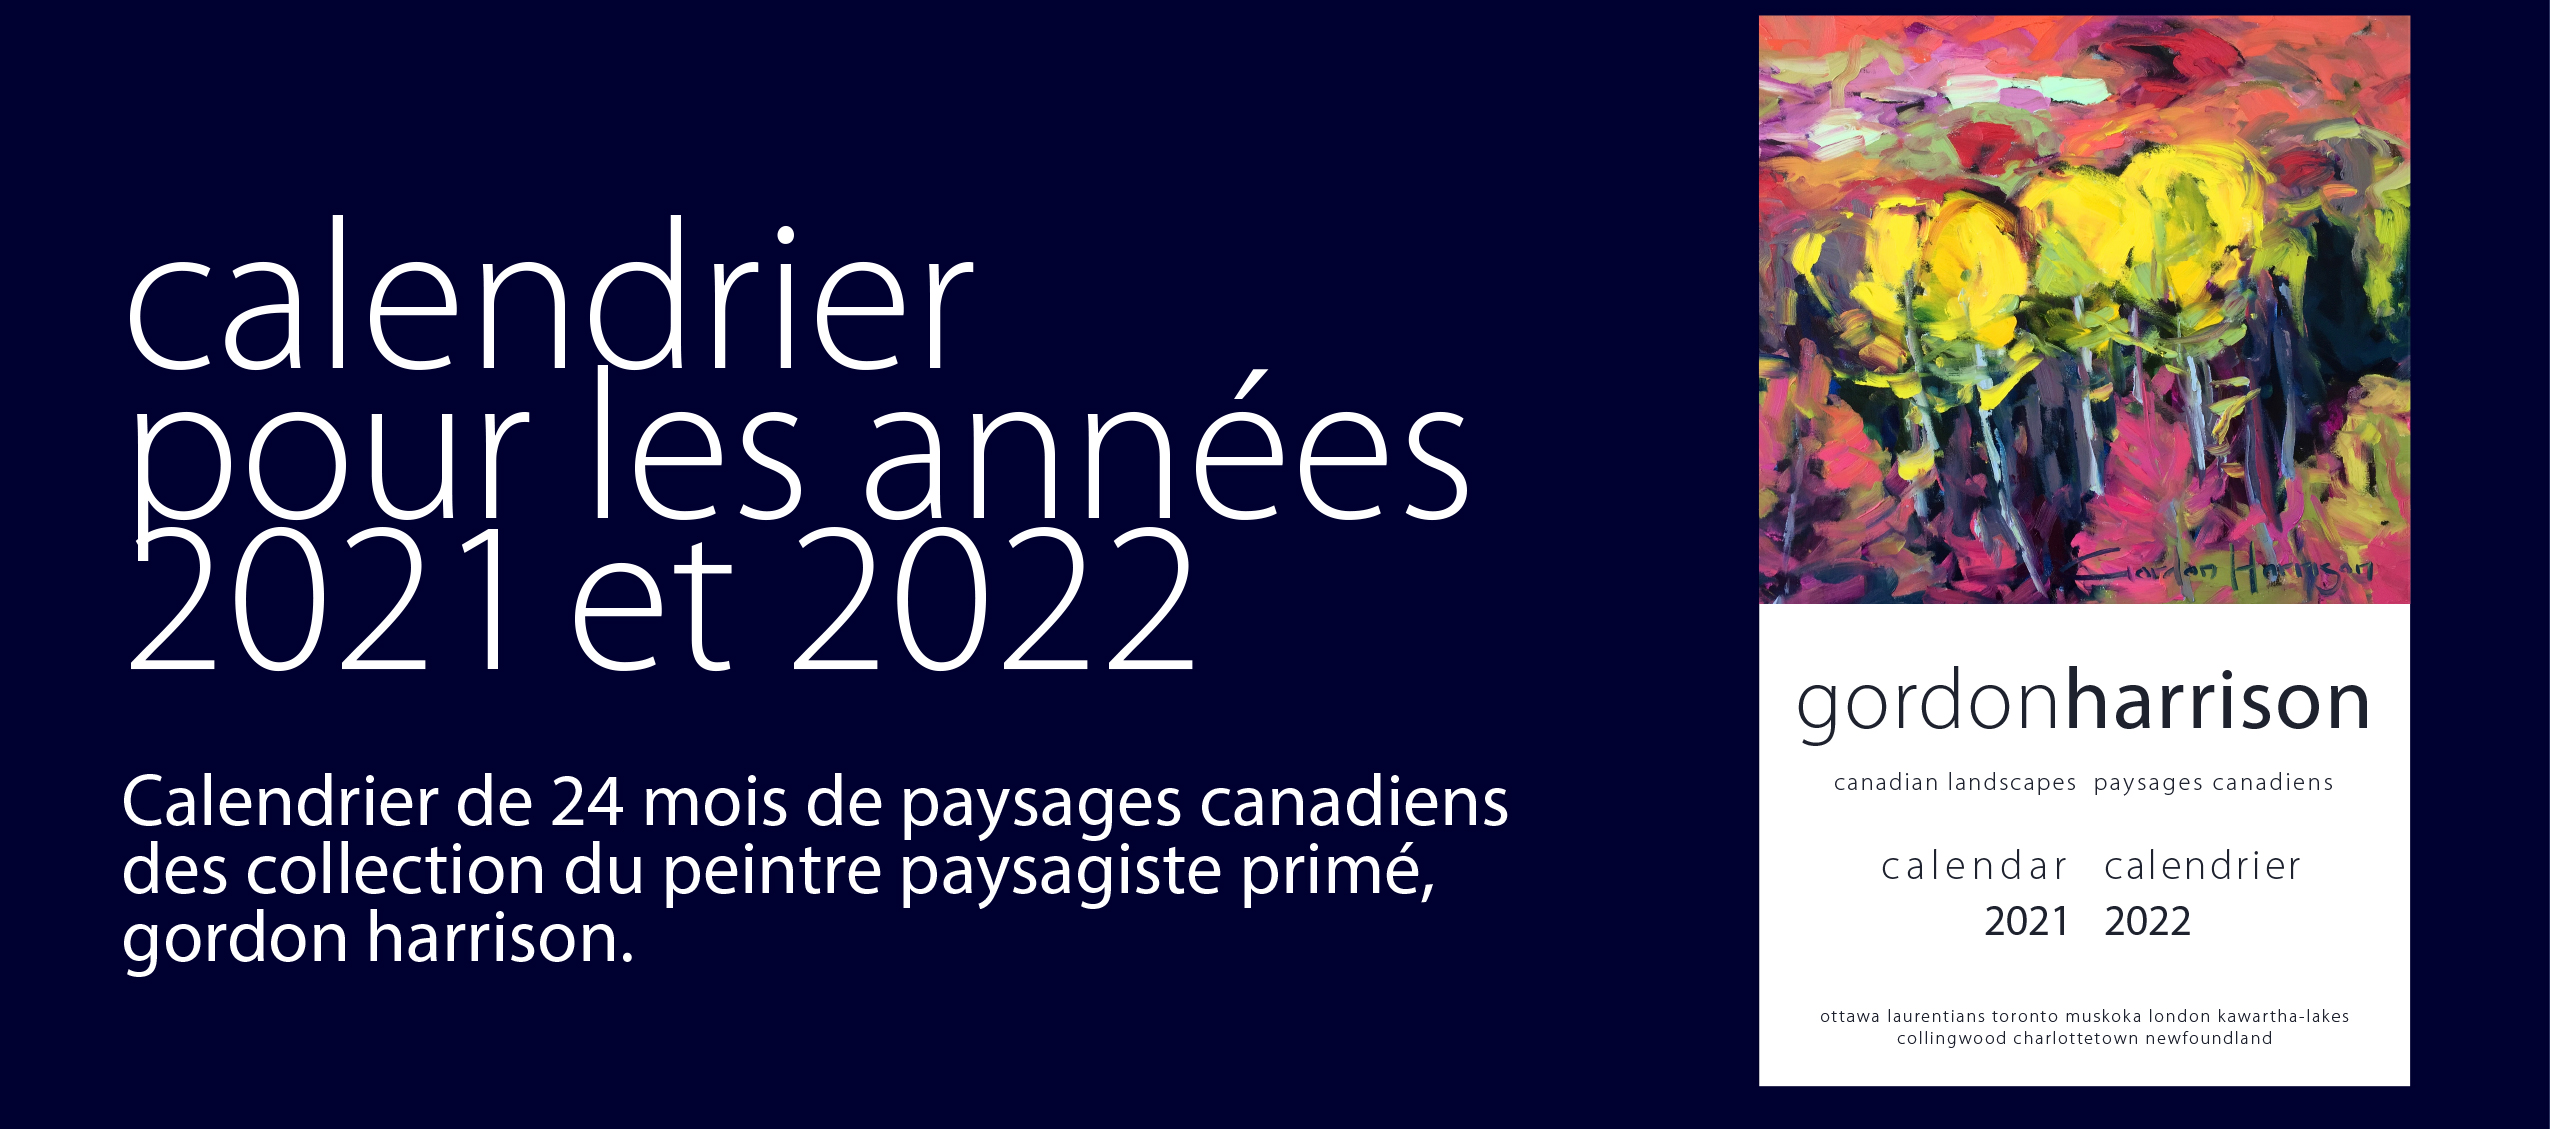 calendrier du grand peintre paysagiste gordon harrison 2021 et